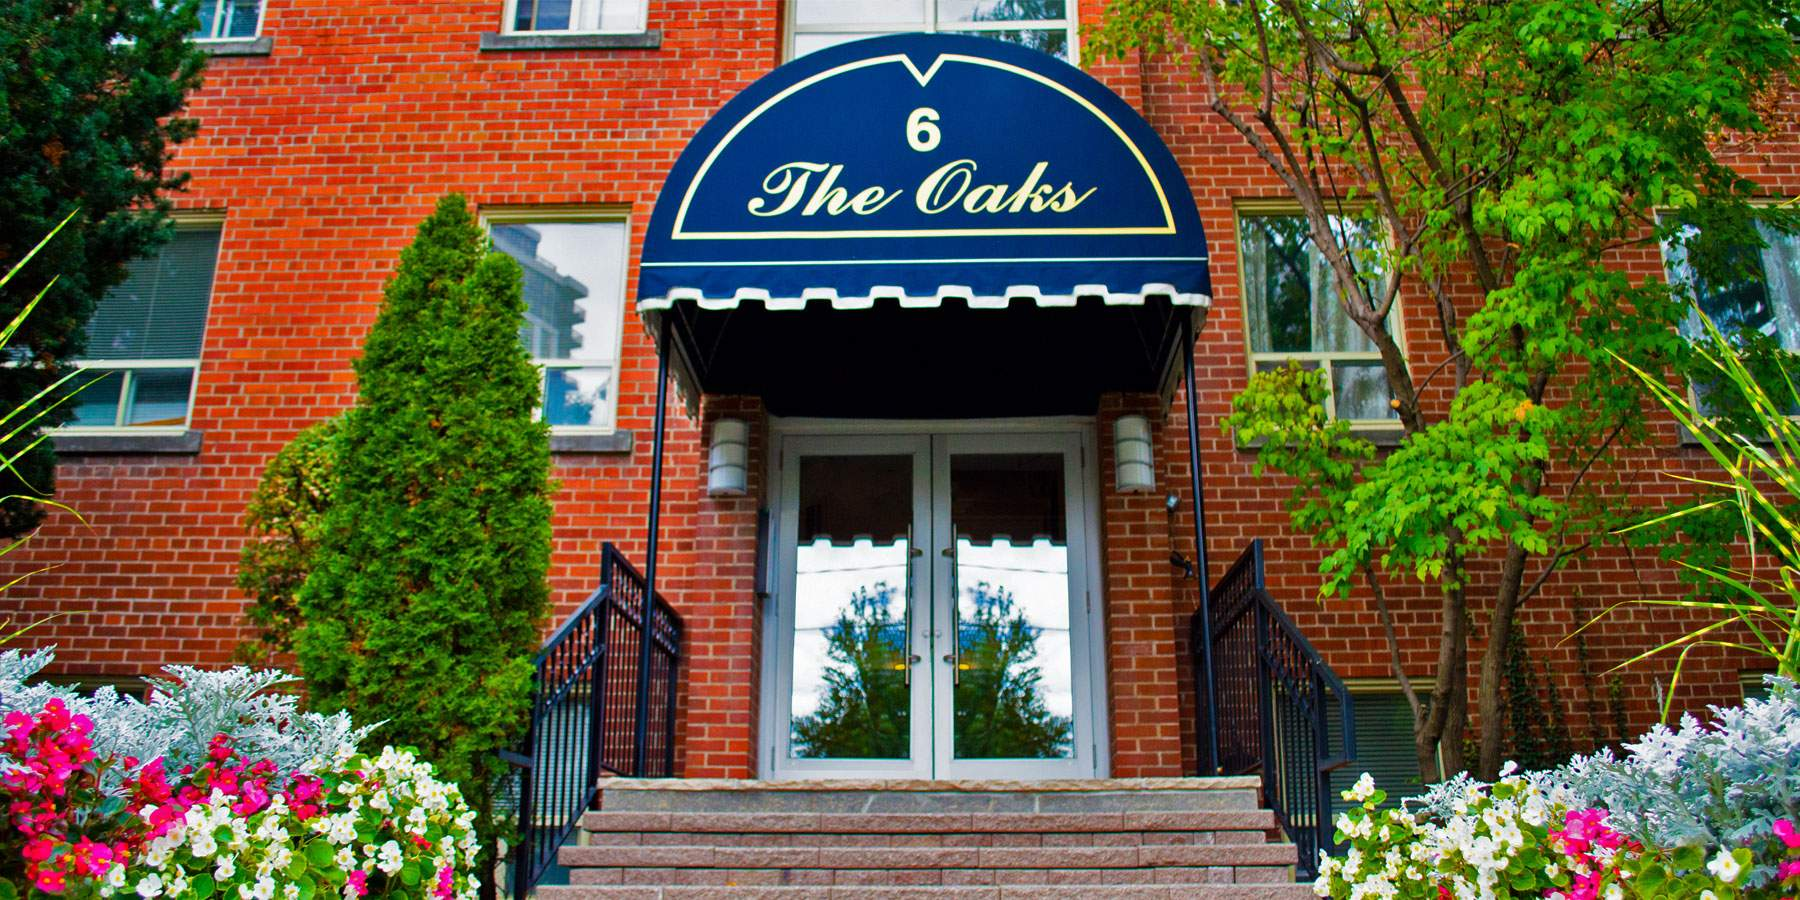 The Oaks Exterior Entrance